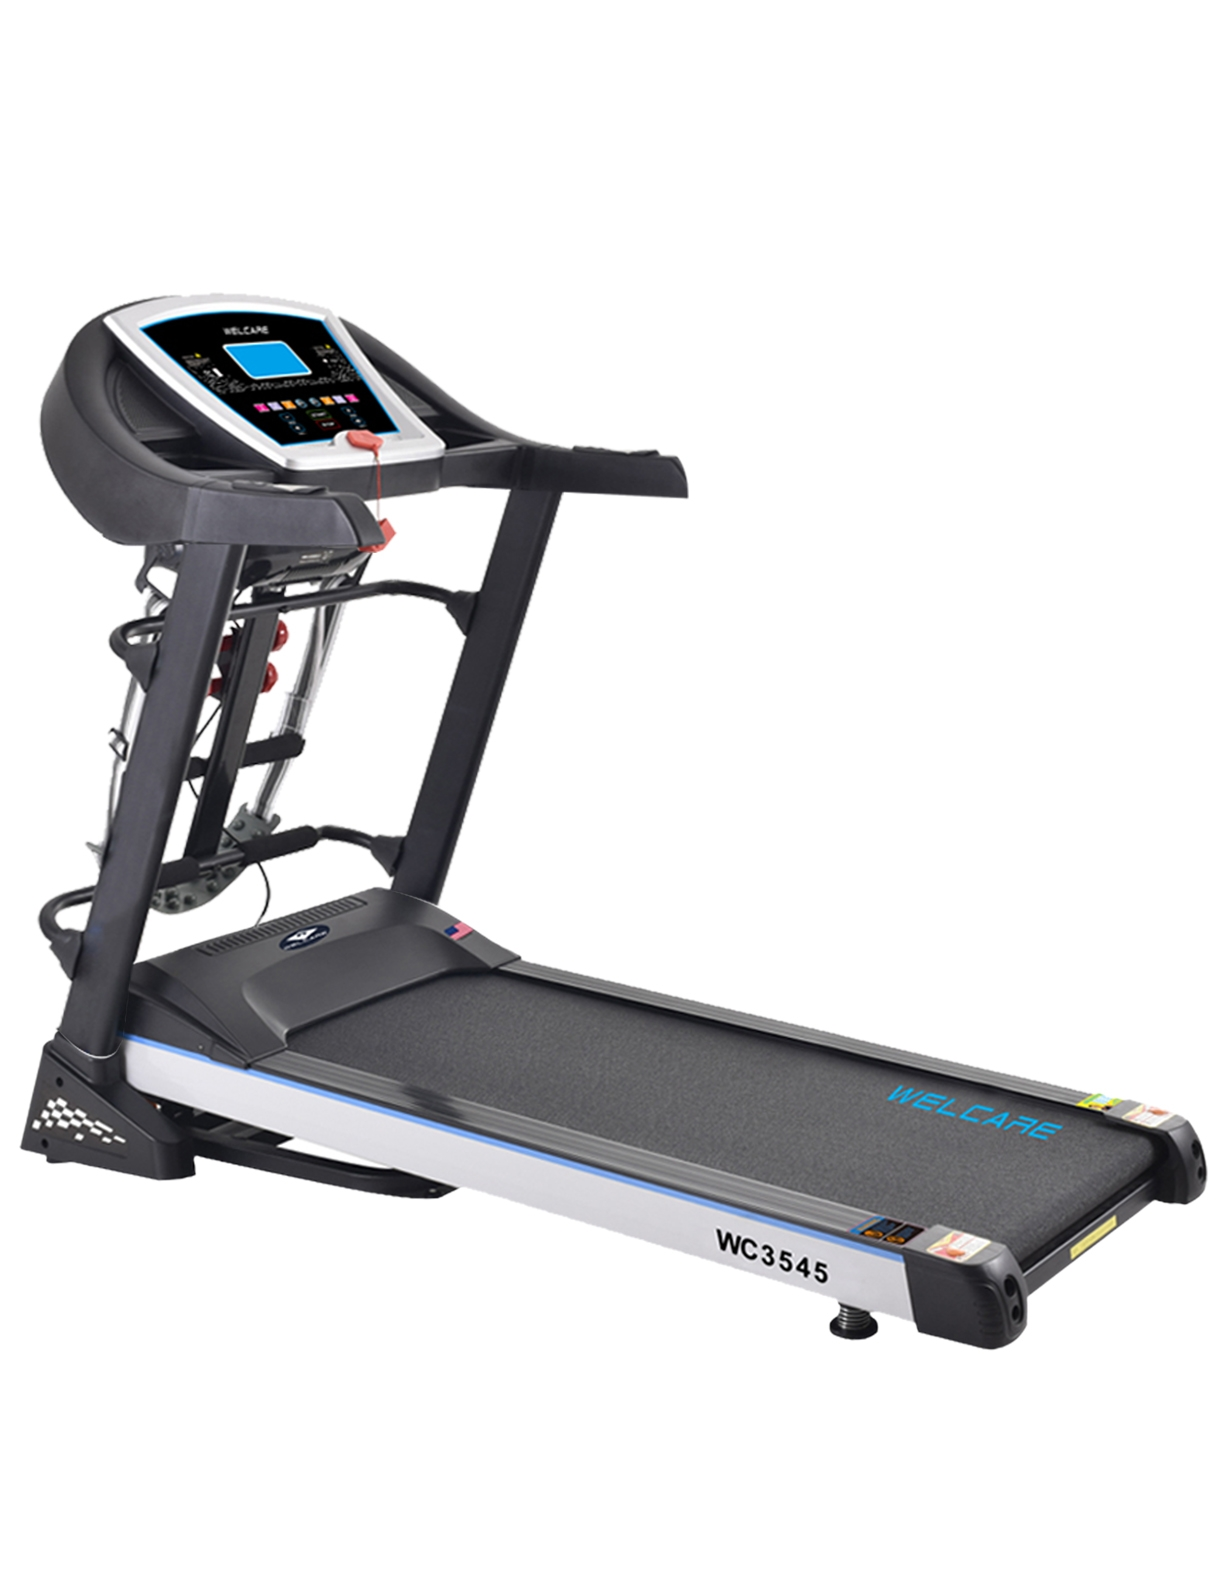 WC 3545M MOTORIZED TREADMILL